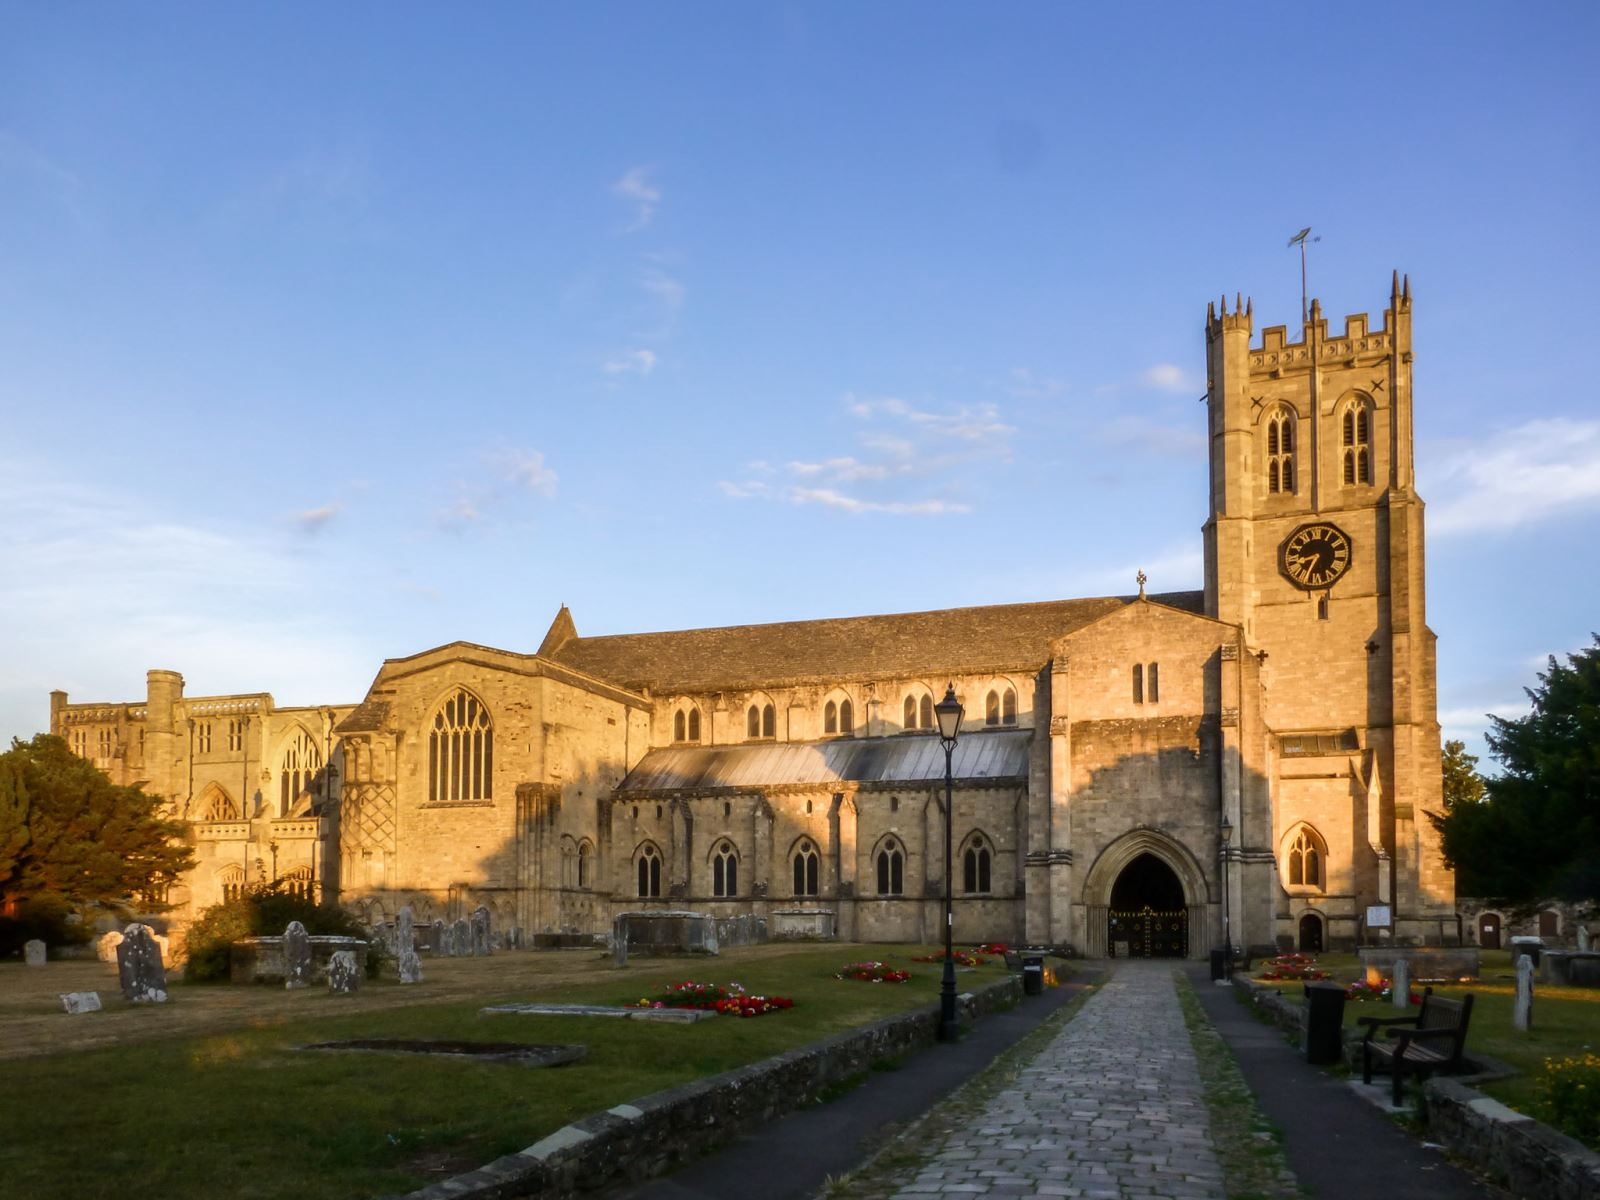 Evening light at Christchurch Priory, Dorset